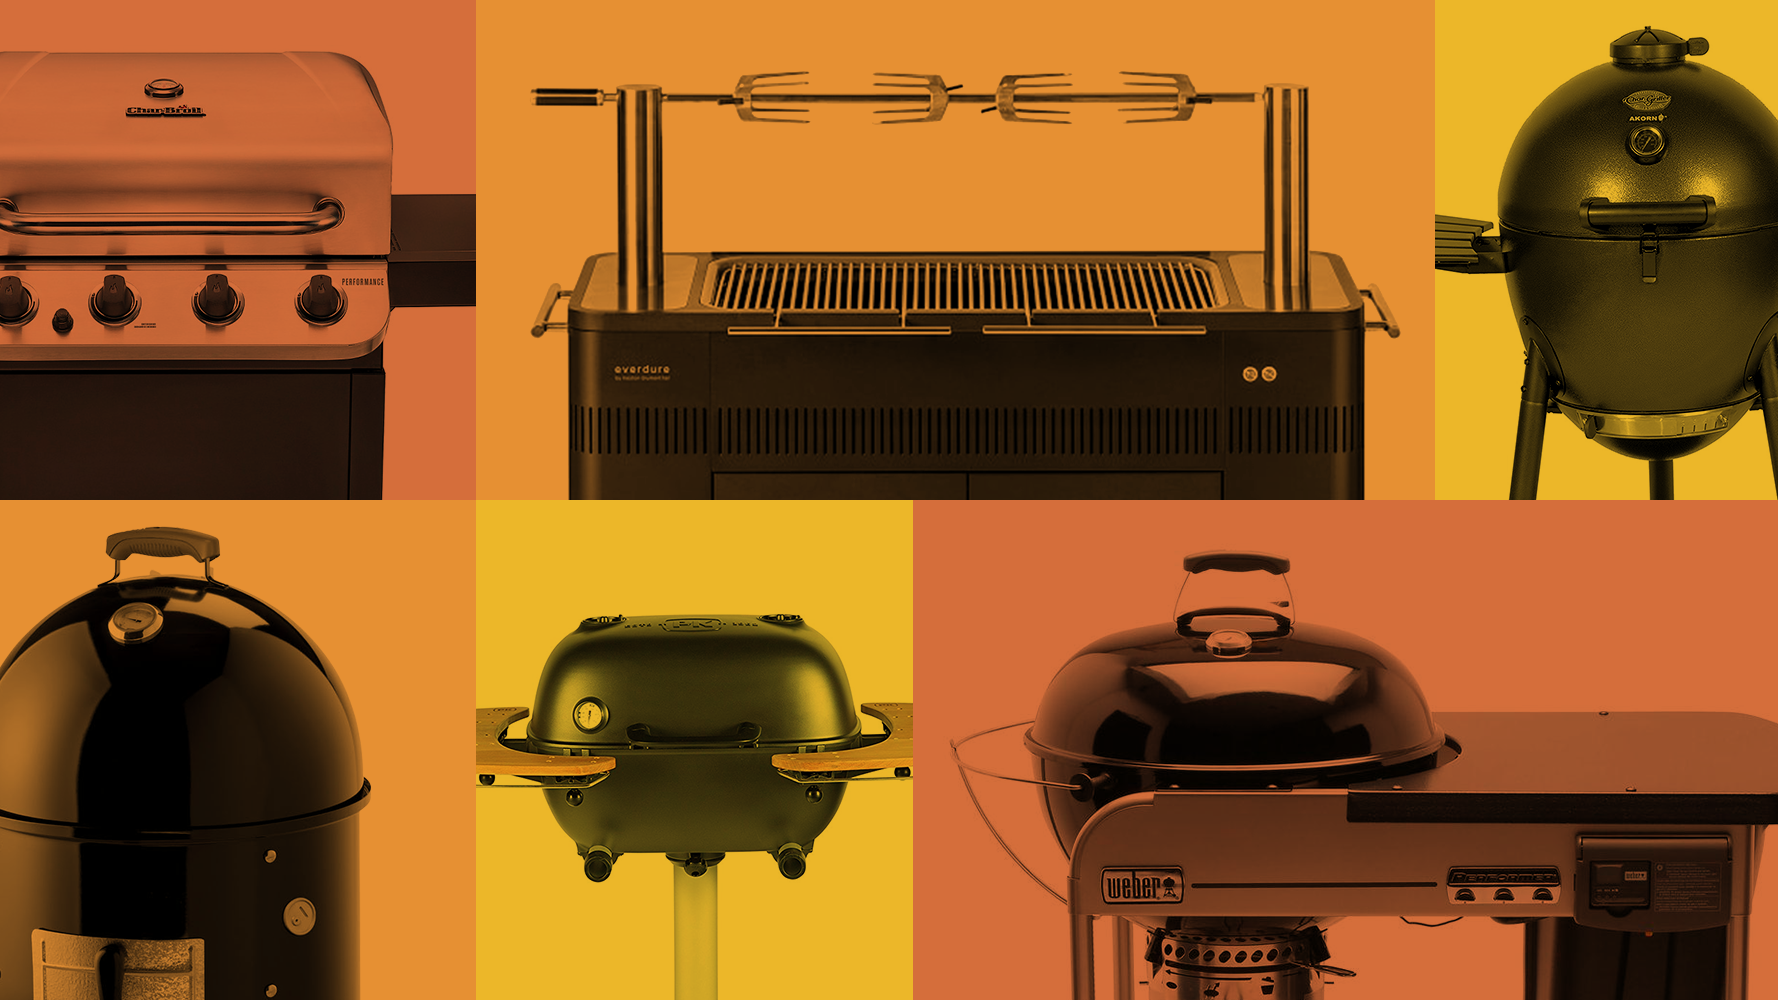 The Best Grills and Smokers for Your Barbecues